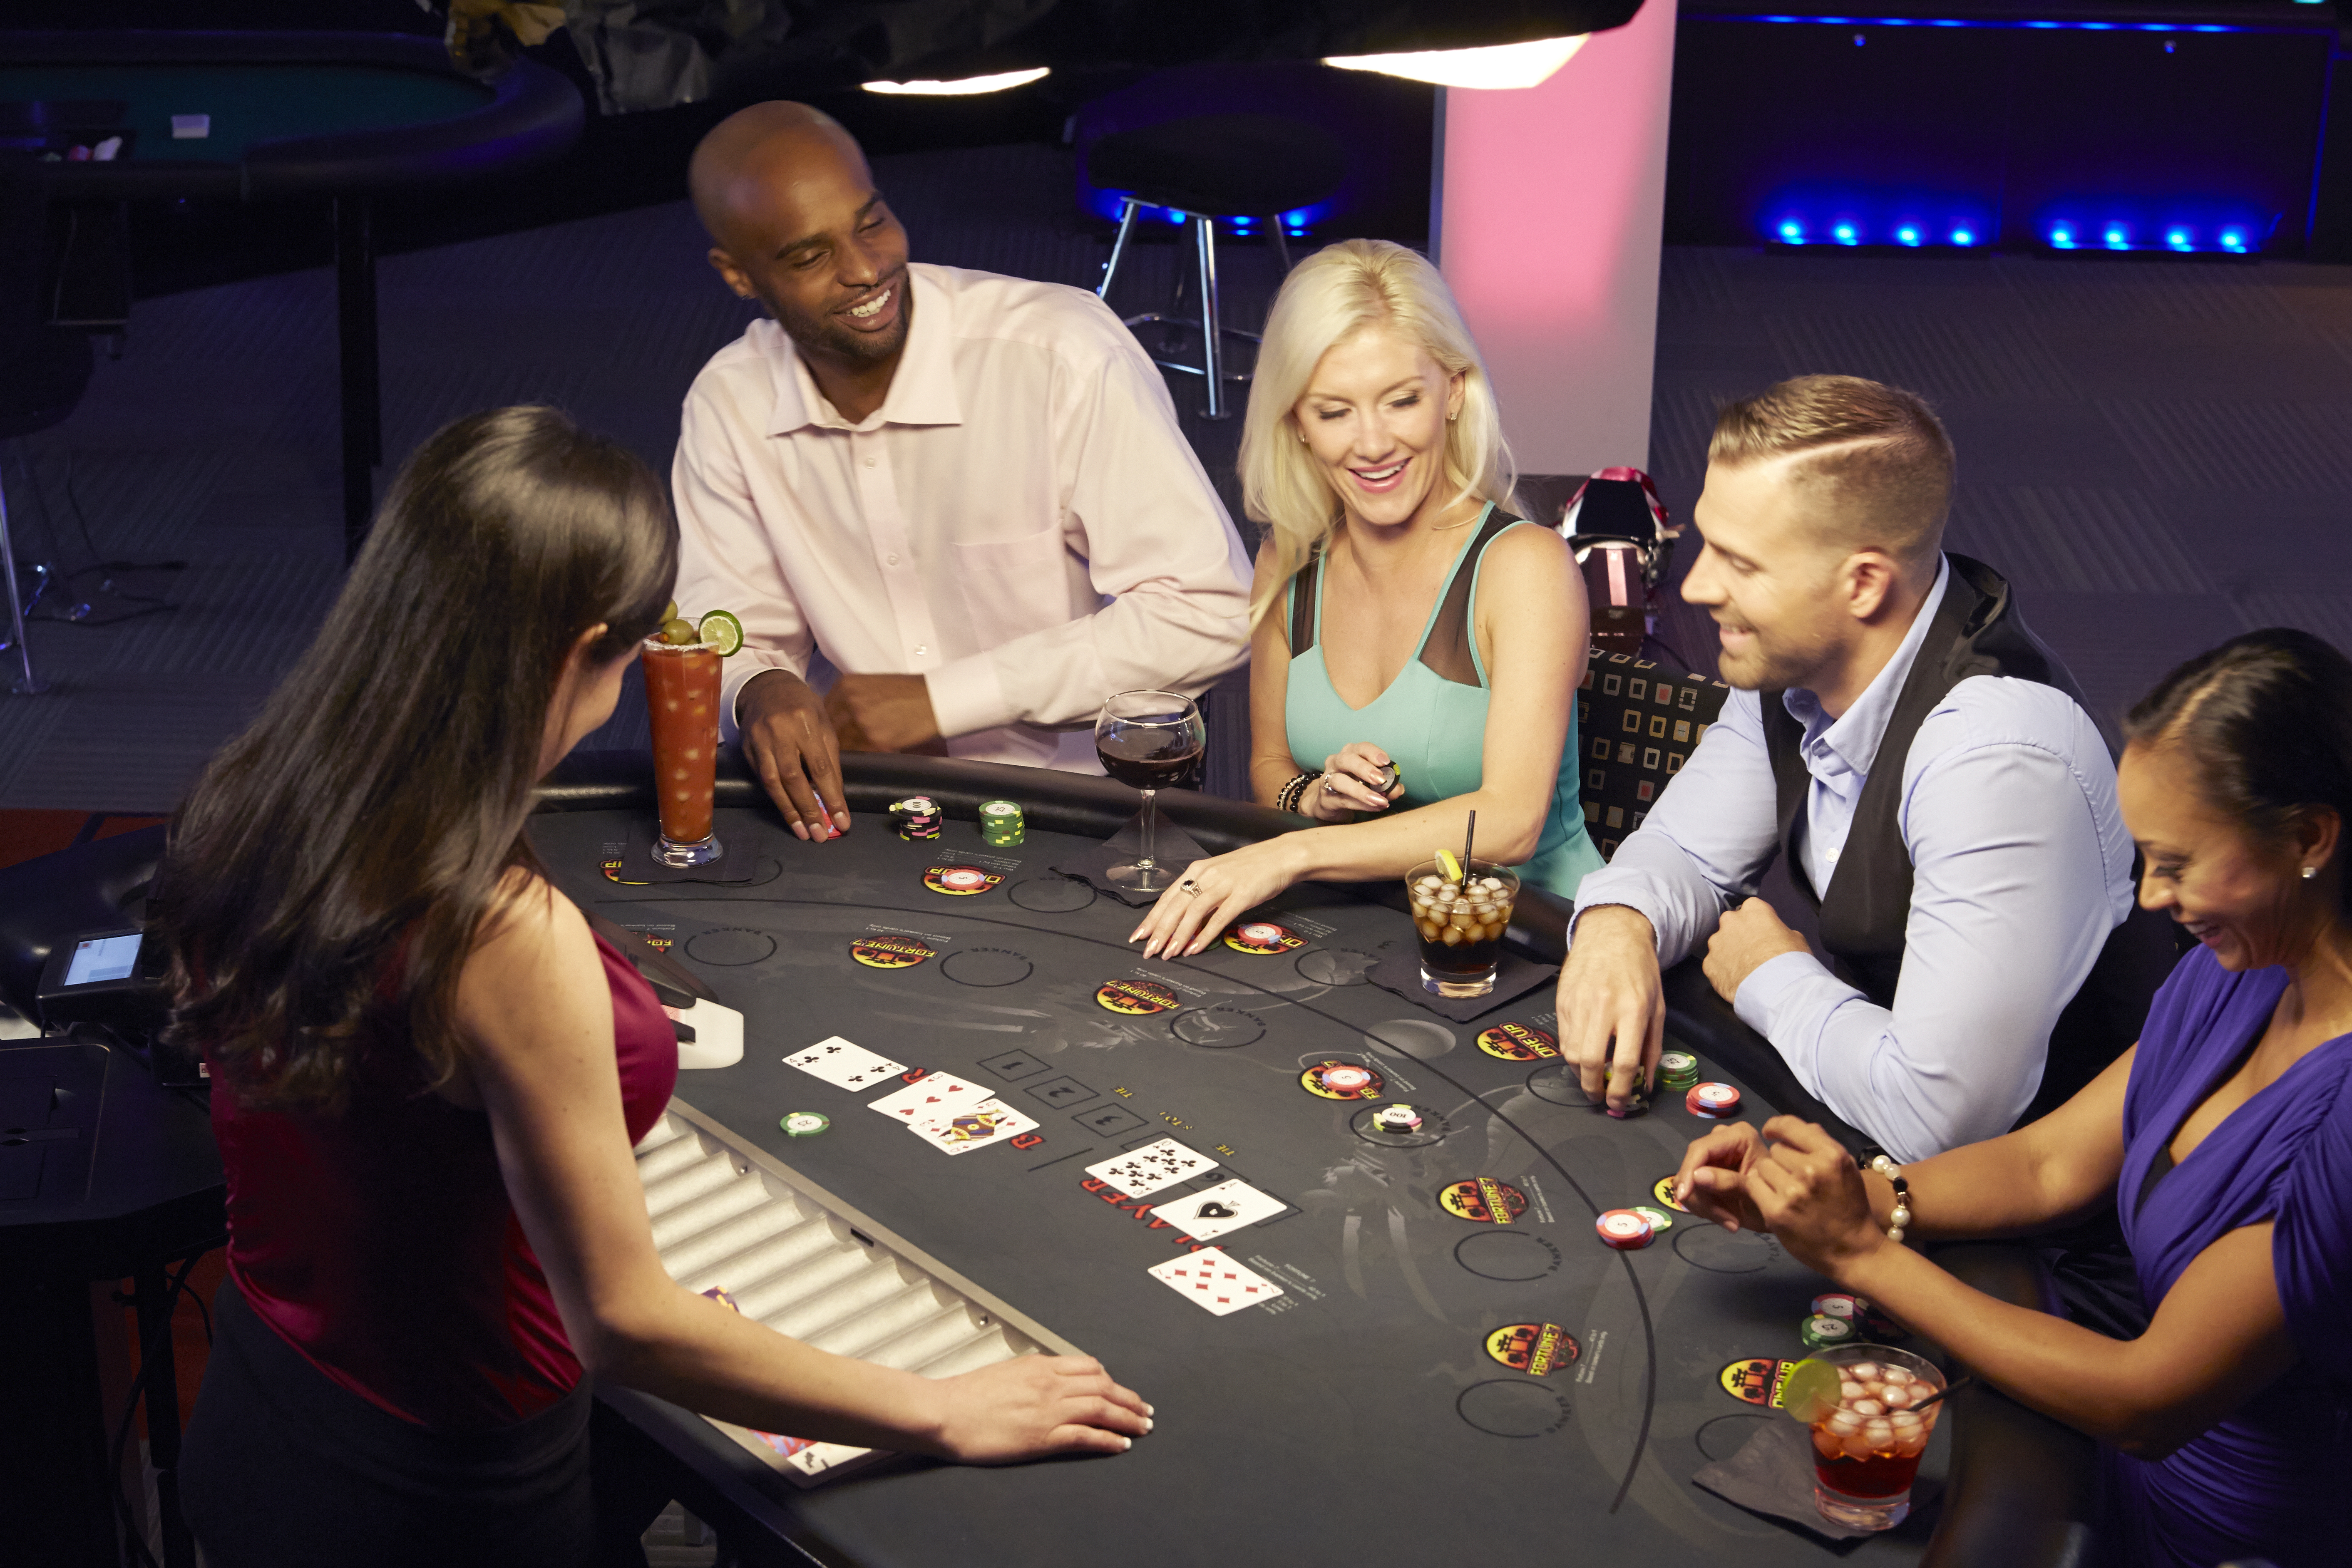 Free 0nline casino games